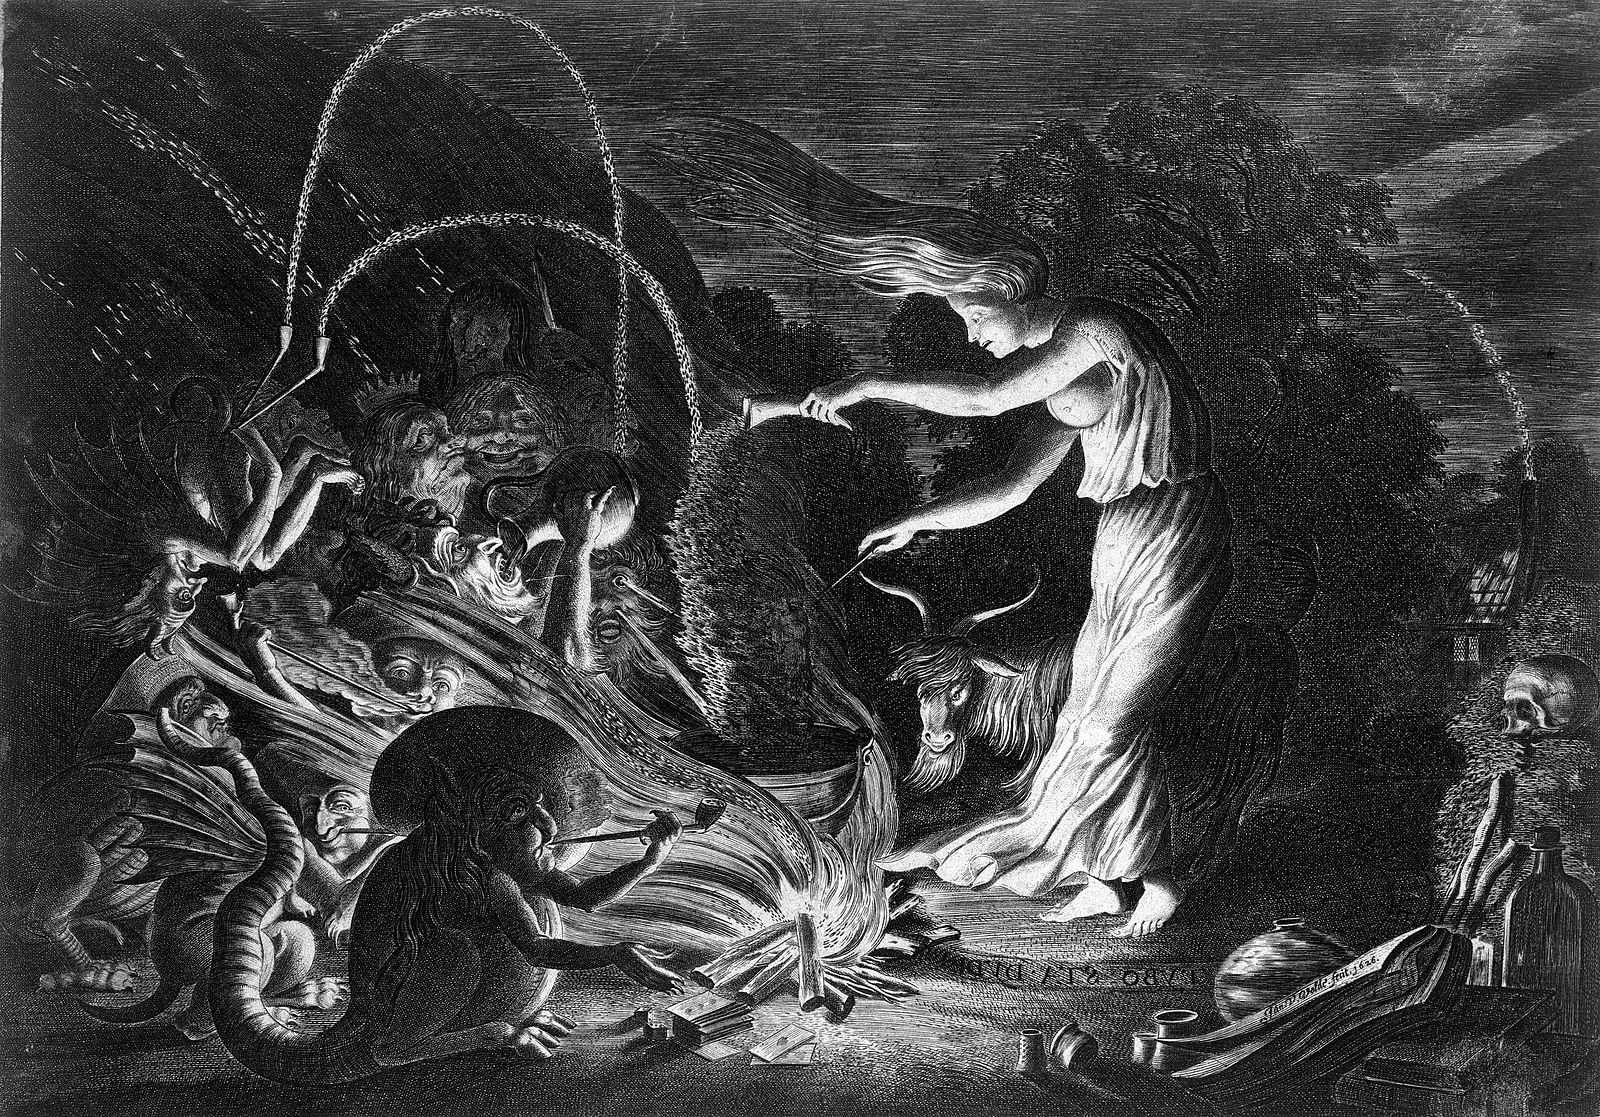 black and white image of a woman casting spells in the forest surrounded by animals